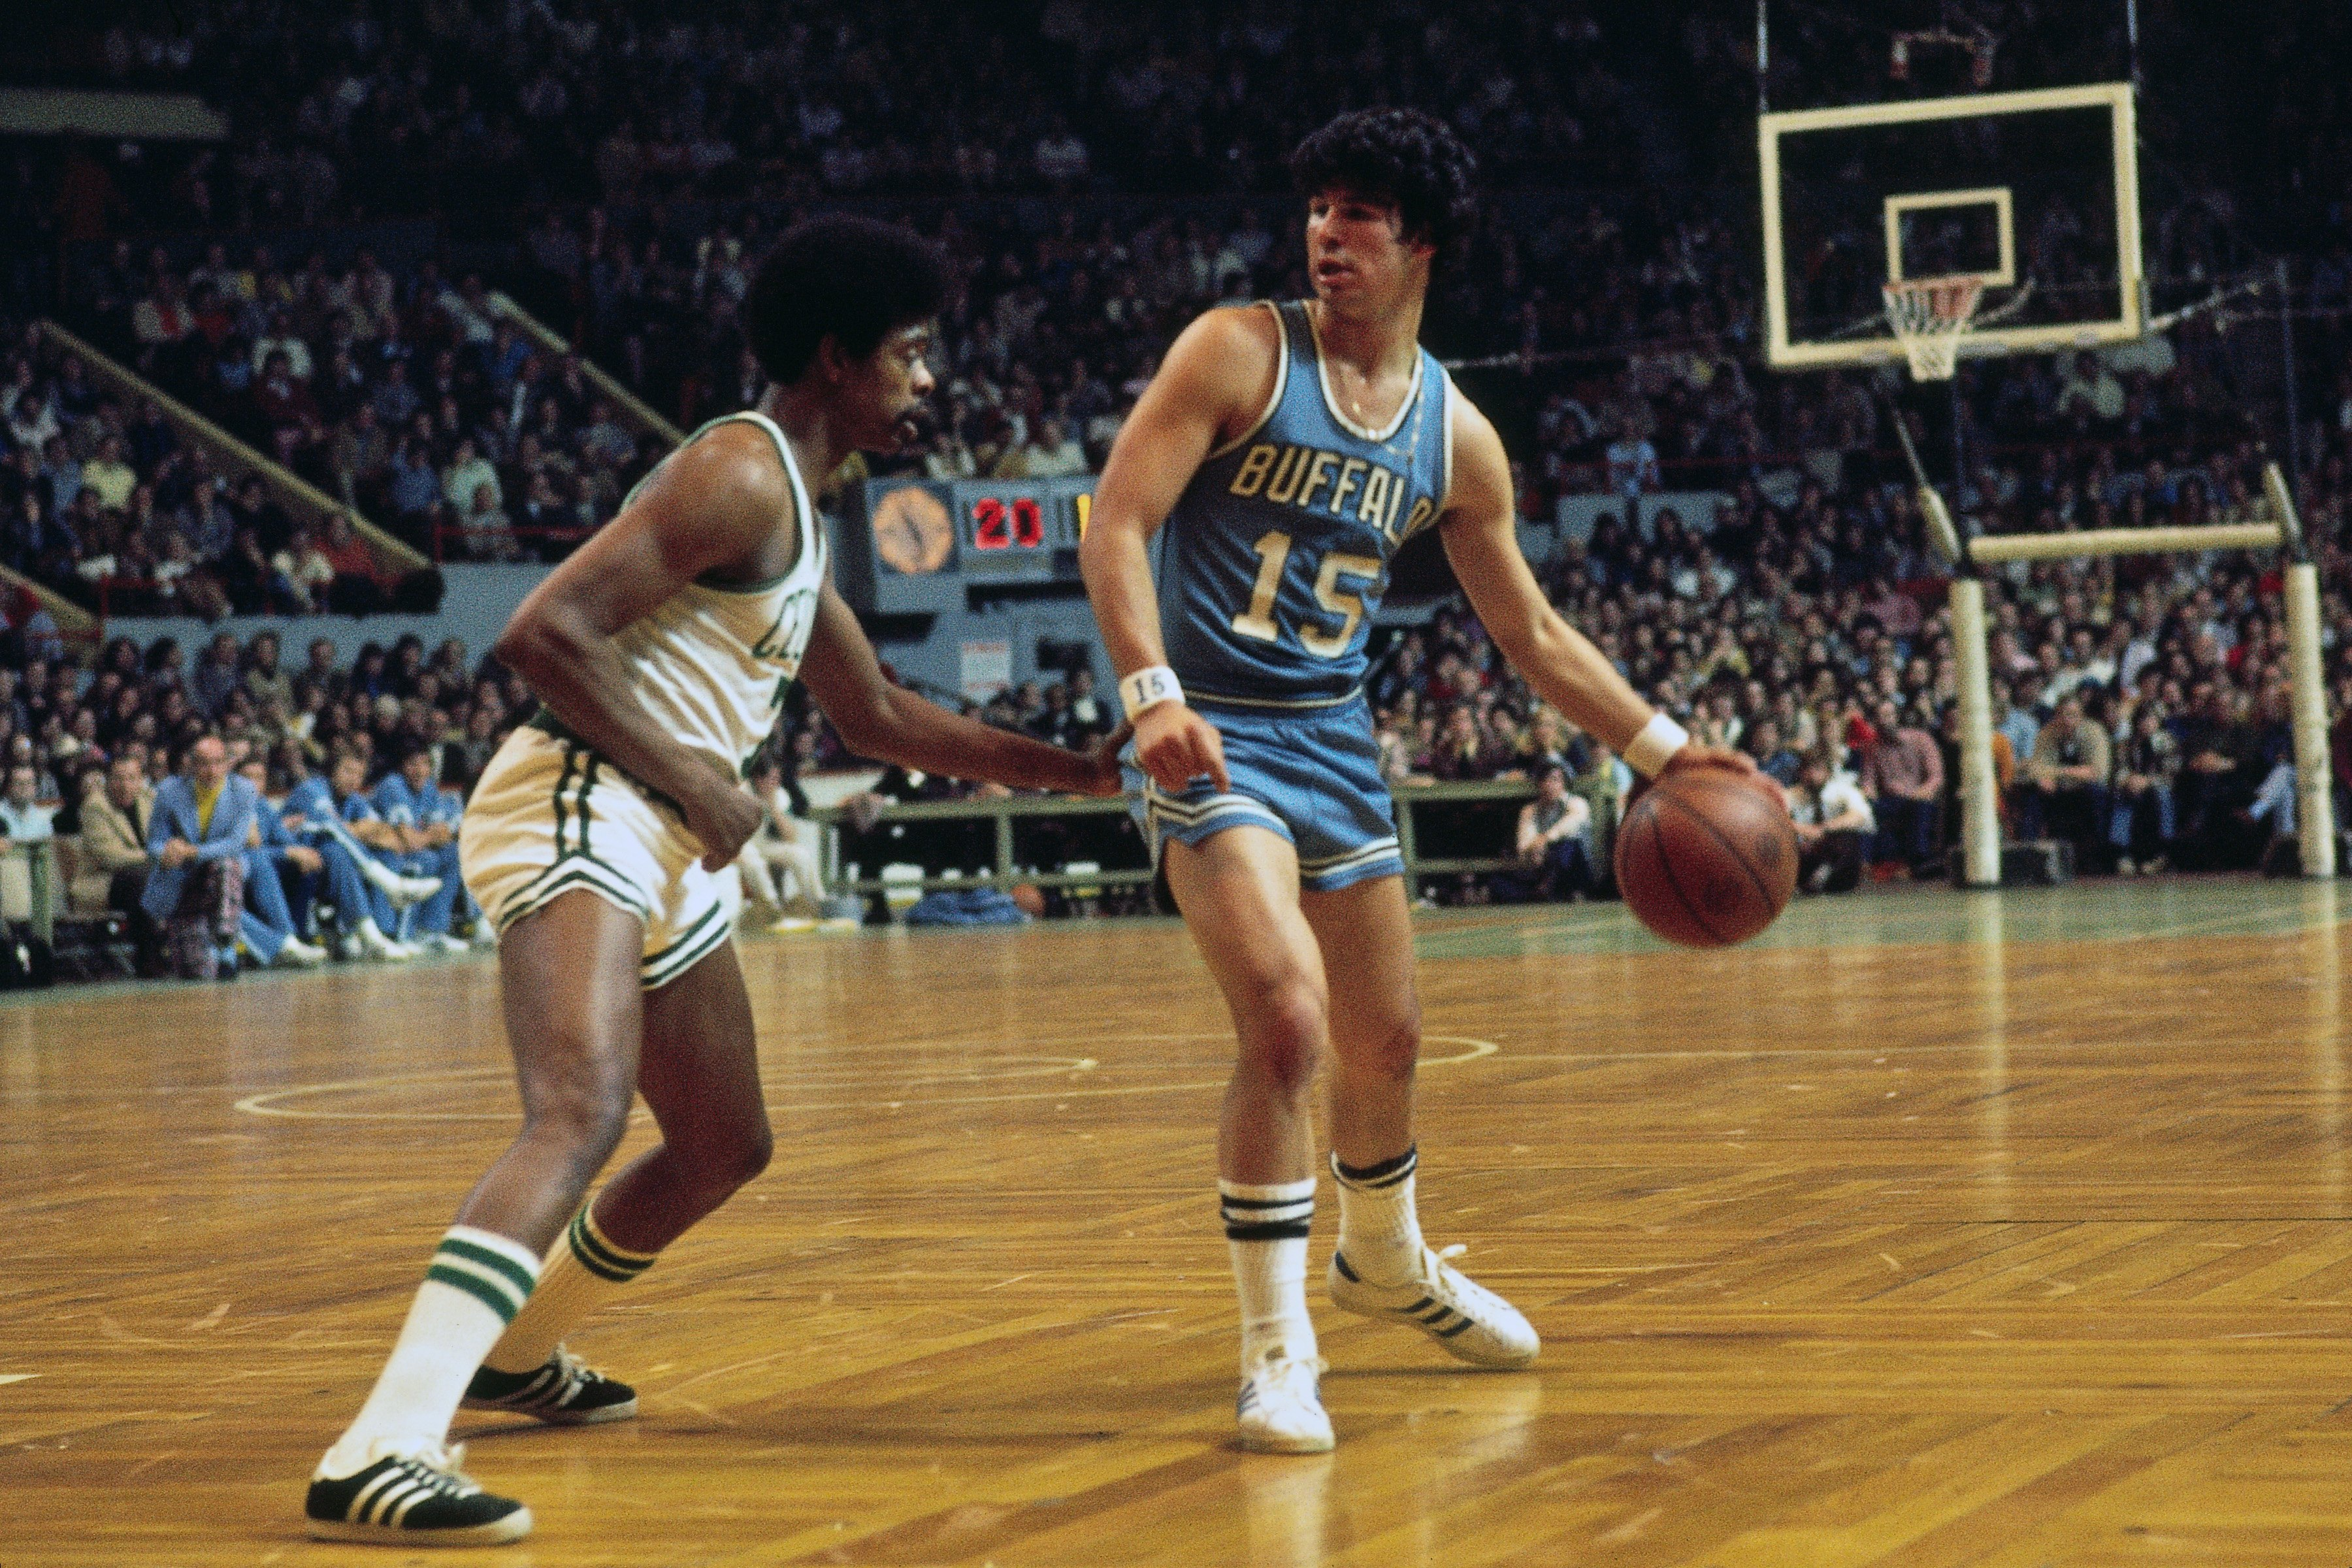 Los Angeles Clippers Top 10 NBA Draft picks of all time Page 5